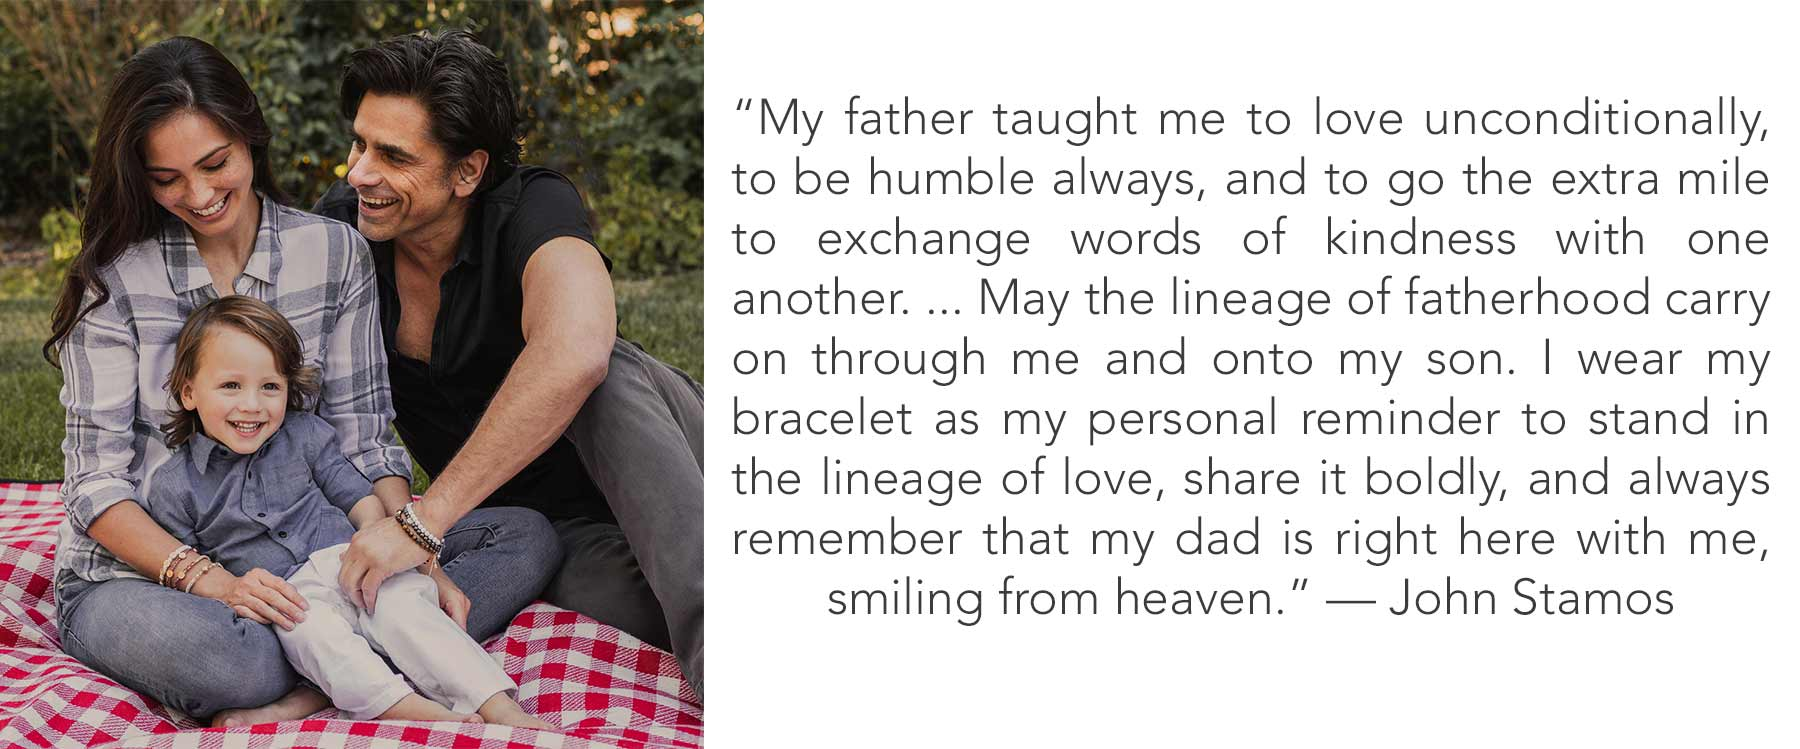 Caitlin, Billy and John Stamos with a quote from John about the lessons he learned from his father